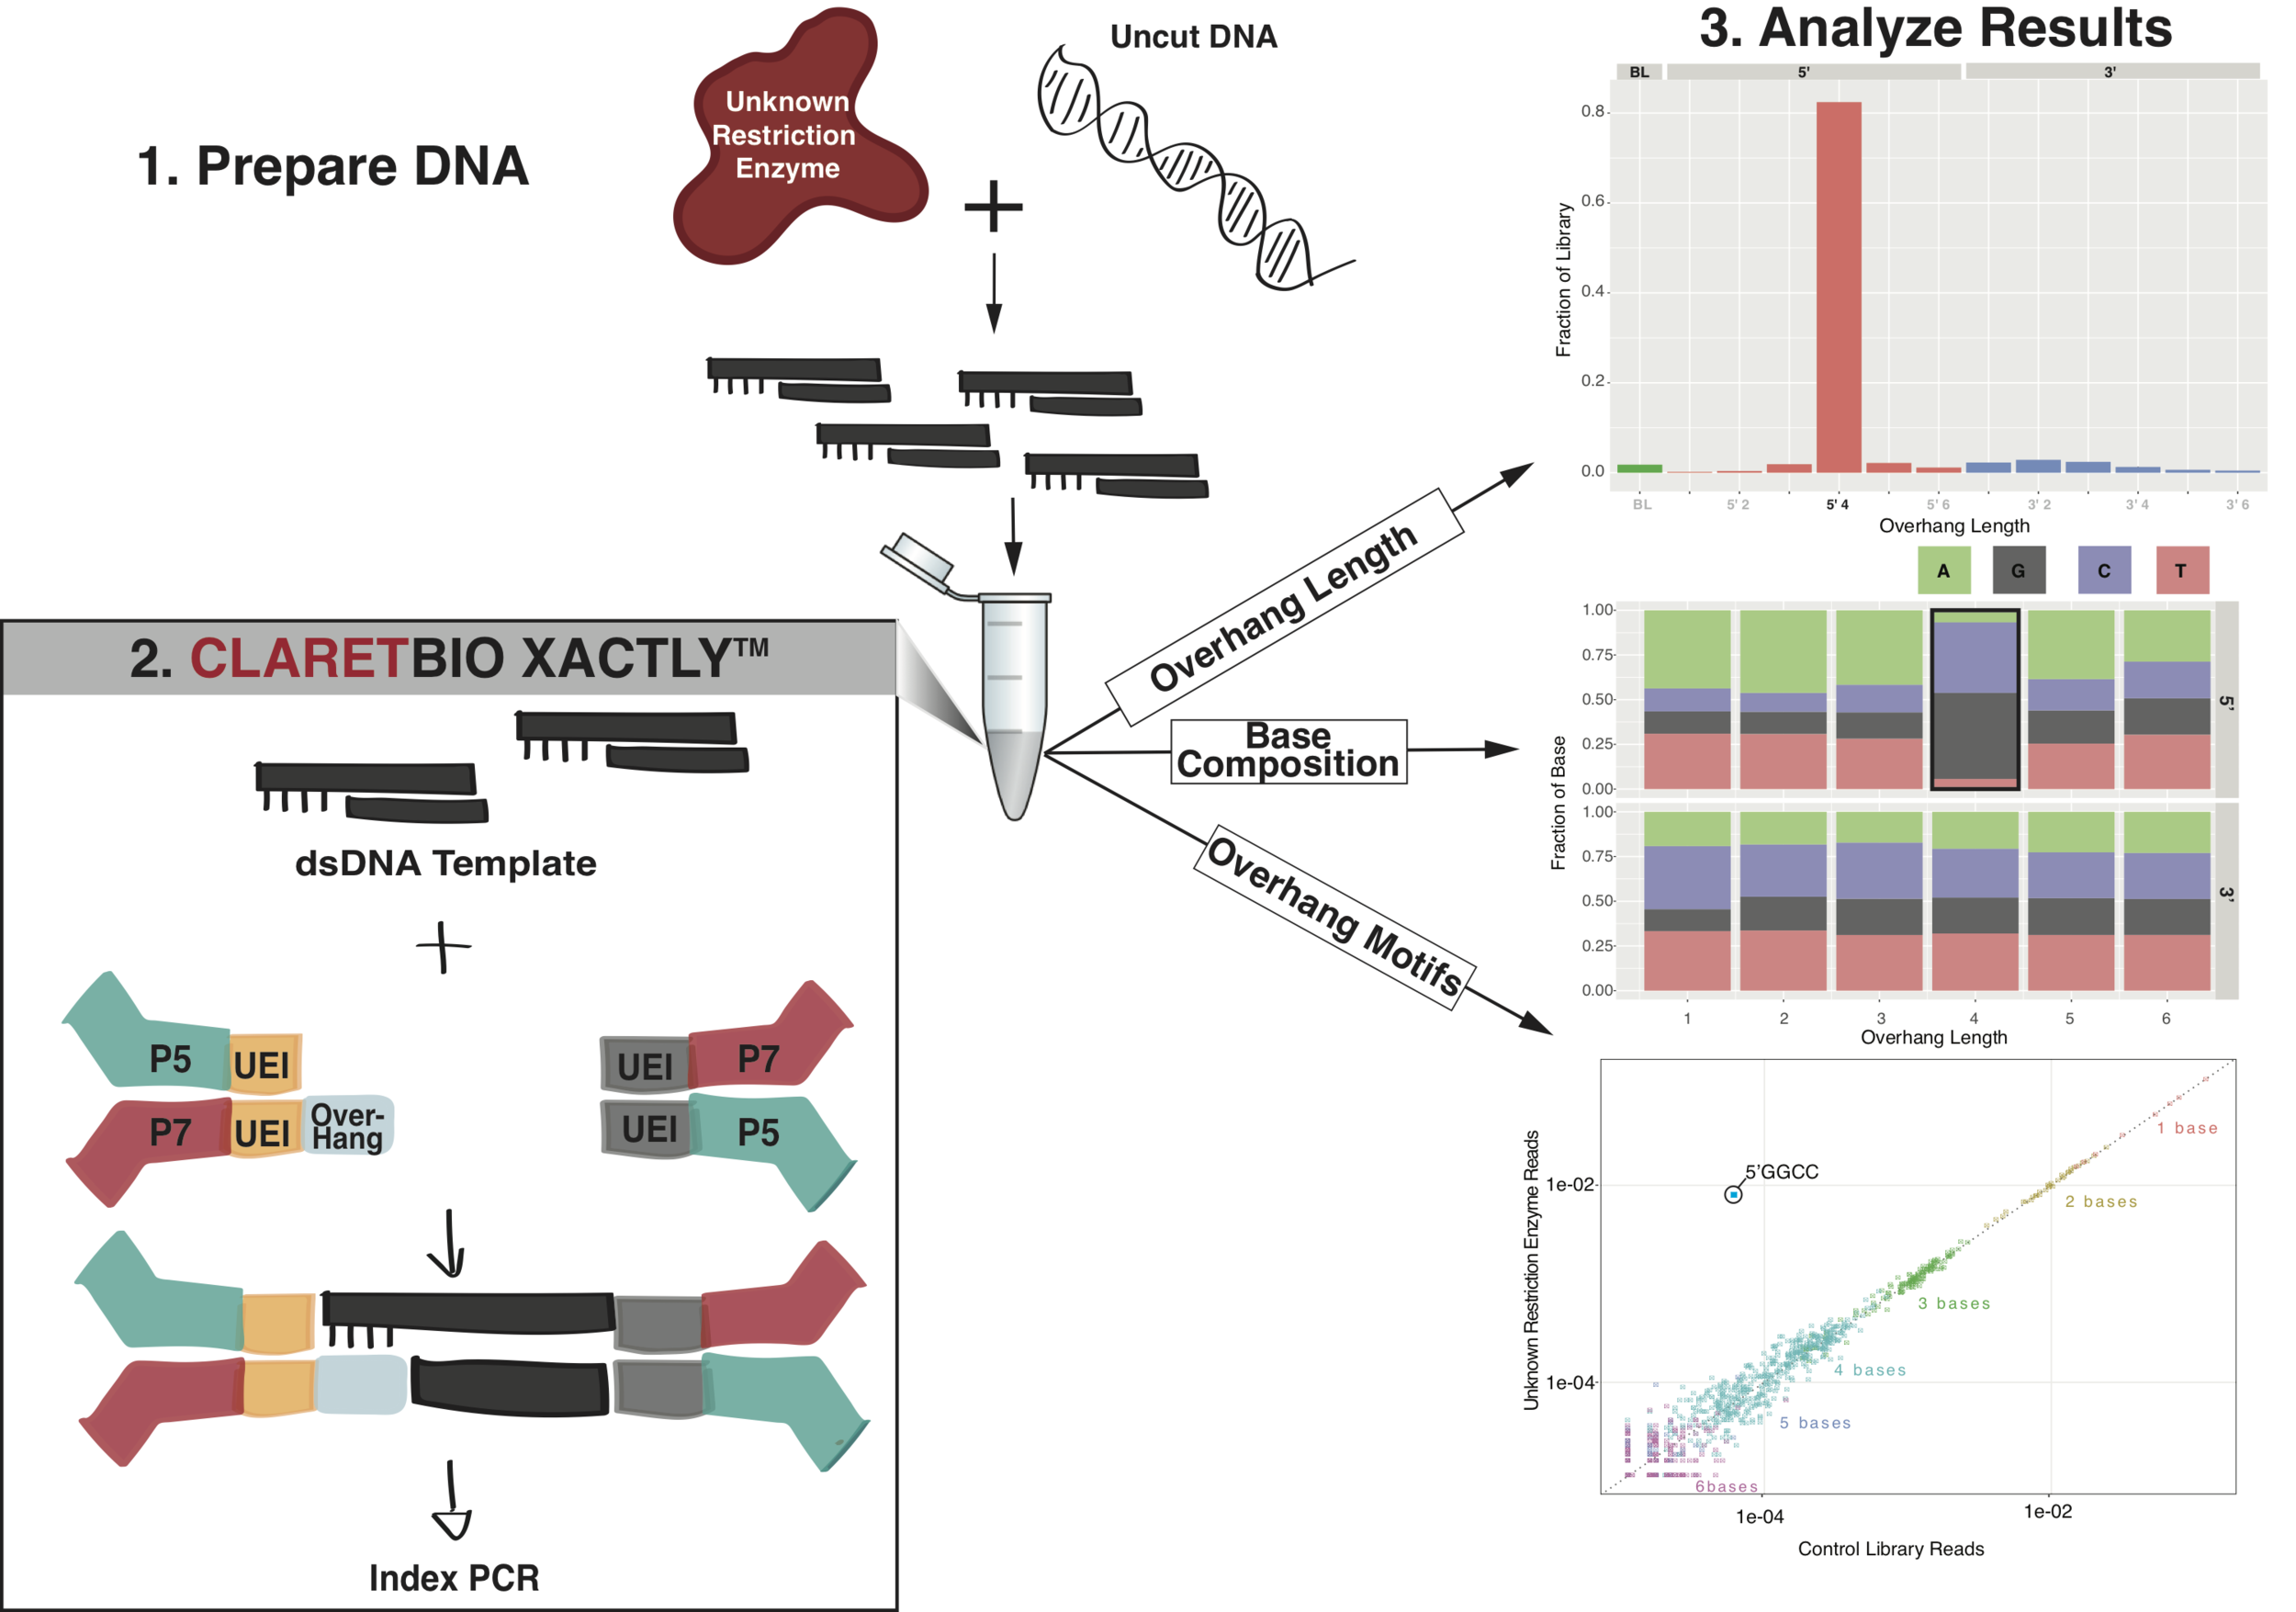 In this illustrated example we elucidate the cut site left by an uncharacterized restriction enzyme using XACTLY. HMW DNA is first digested with the restriction enzyme and then used as input into XACTLY. After the XACTLY protocol the library is sequenced and the data is analyzed with respect to their overhangs. The results show a high prevalence of reads contain 5´ 4 bp overhangs with a predominant base composition of roughly equal proportion of Guanine and Cytosine at the 5´ 4 bp overhang. Further analysis of the overhang motifs revel the 5´ 4 bp cut site to be GGCC.